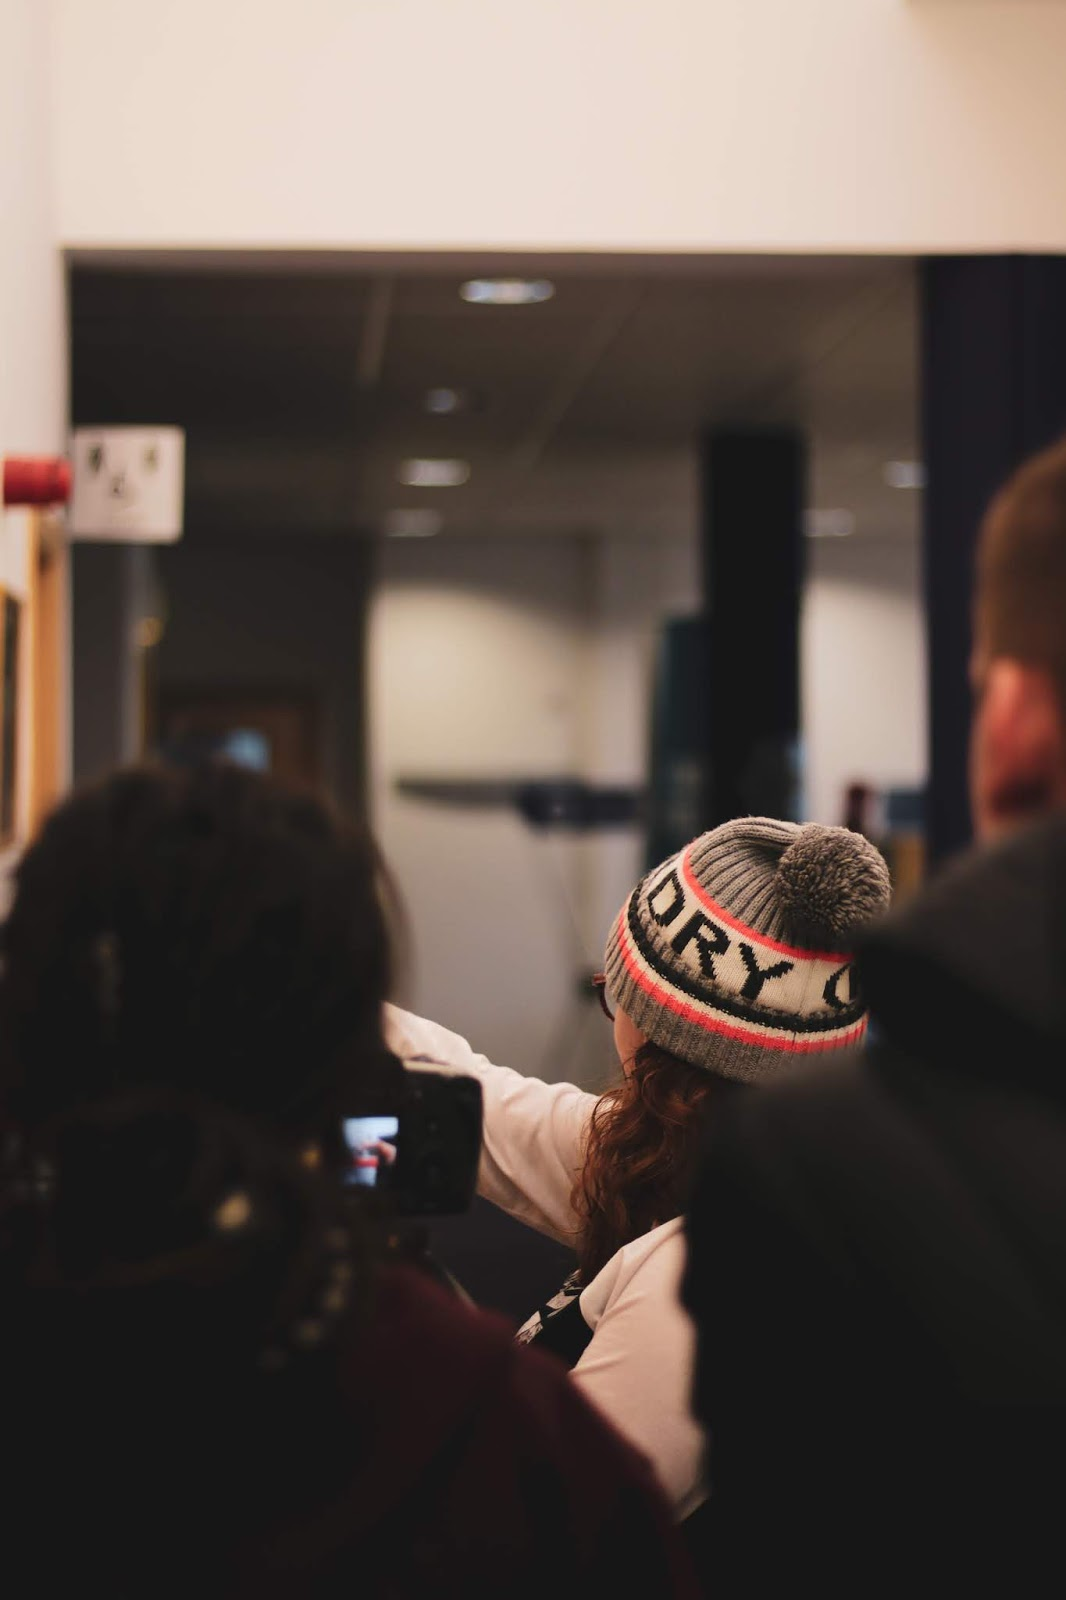 an over the shoulder shot by myself, Jordanne Lee. Two girls standing talking about the film project. the girl on the right has a super dry hat  on, glasses and a white top. The girl on the left has dreadlocks and is looking through a camera